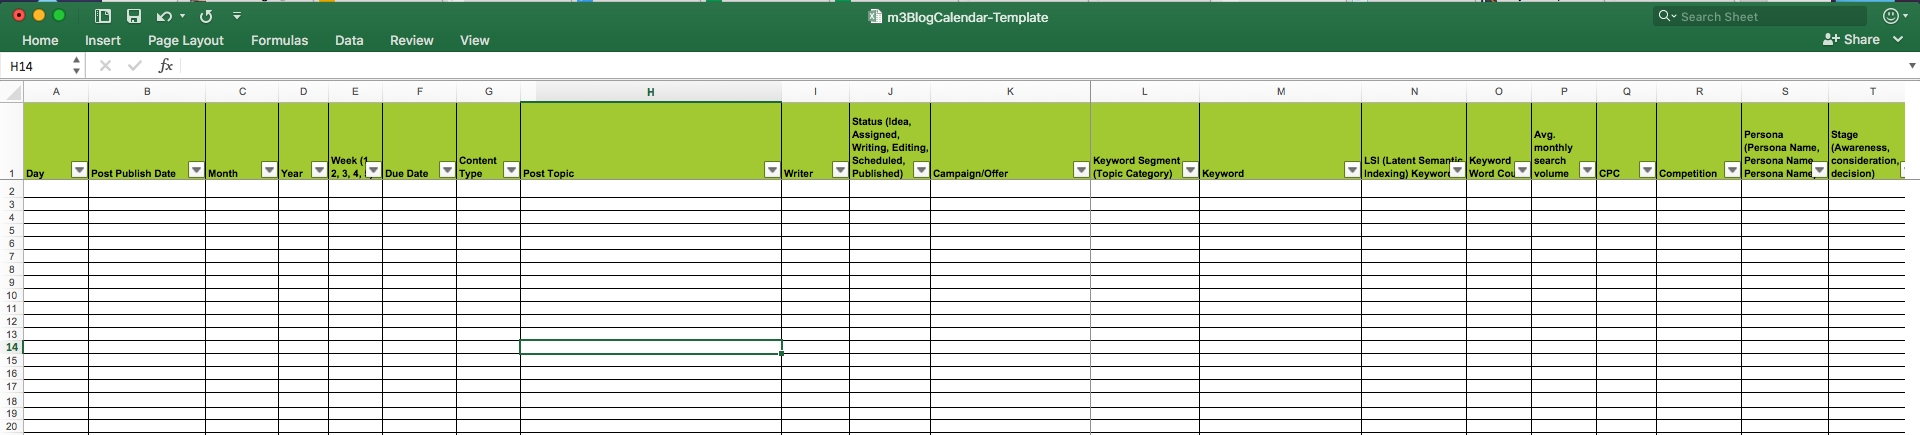 Editorial Calendar Templates For Content Marketing: The Ultimate List with regard to Social Content Calendar Template Monthly